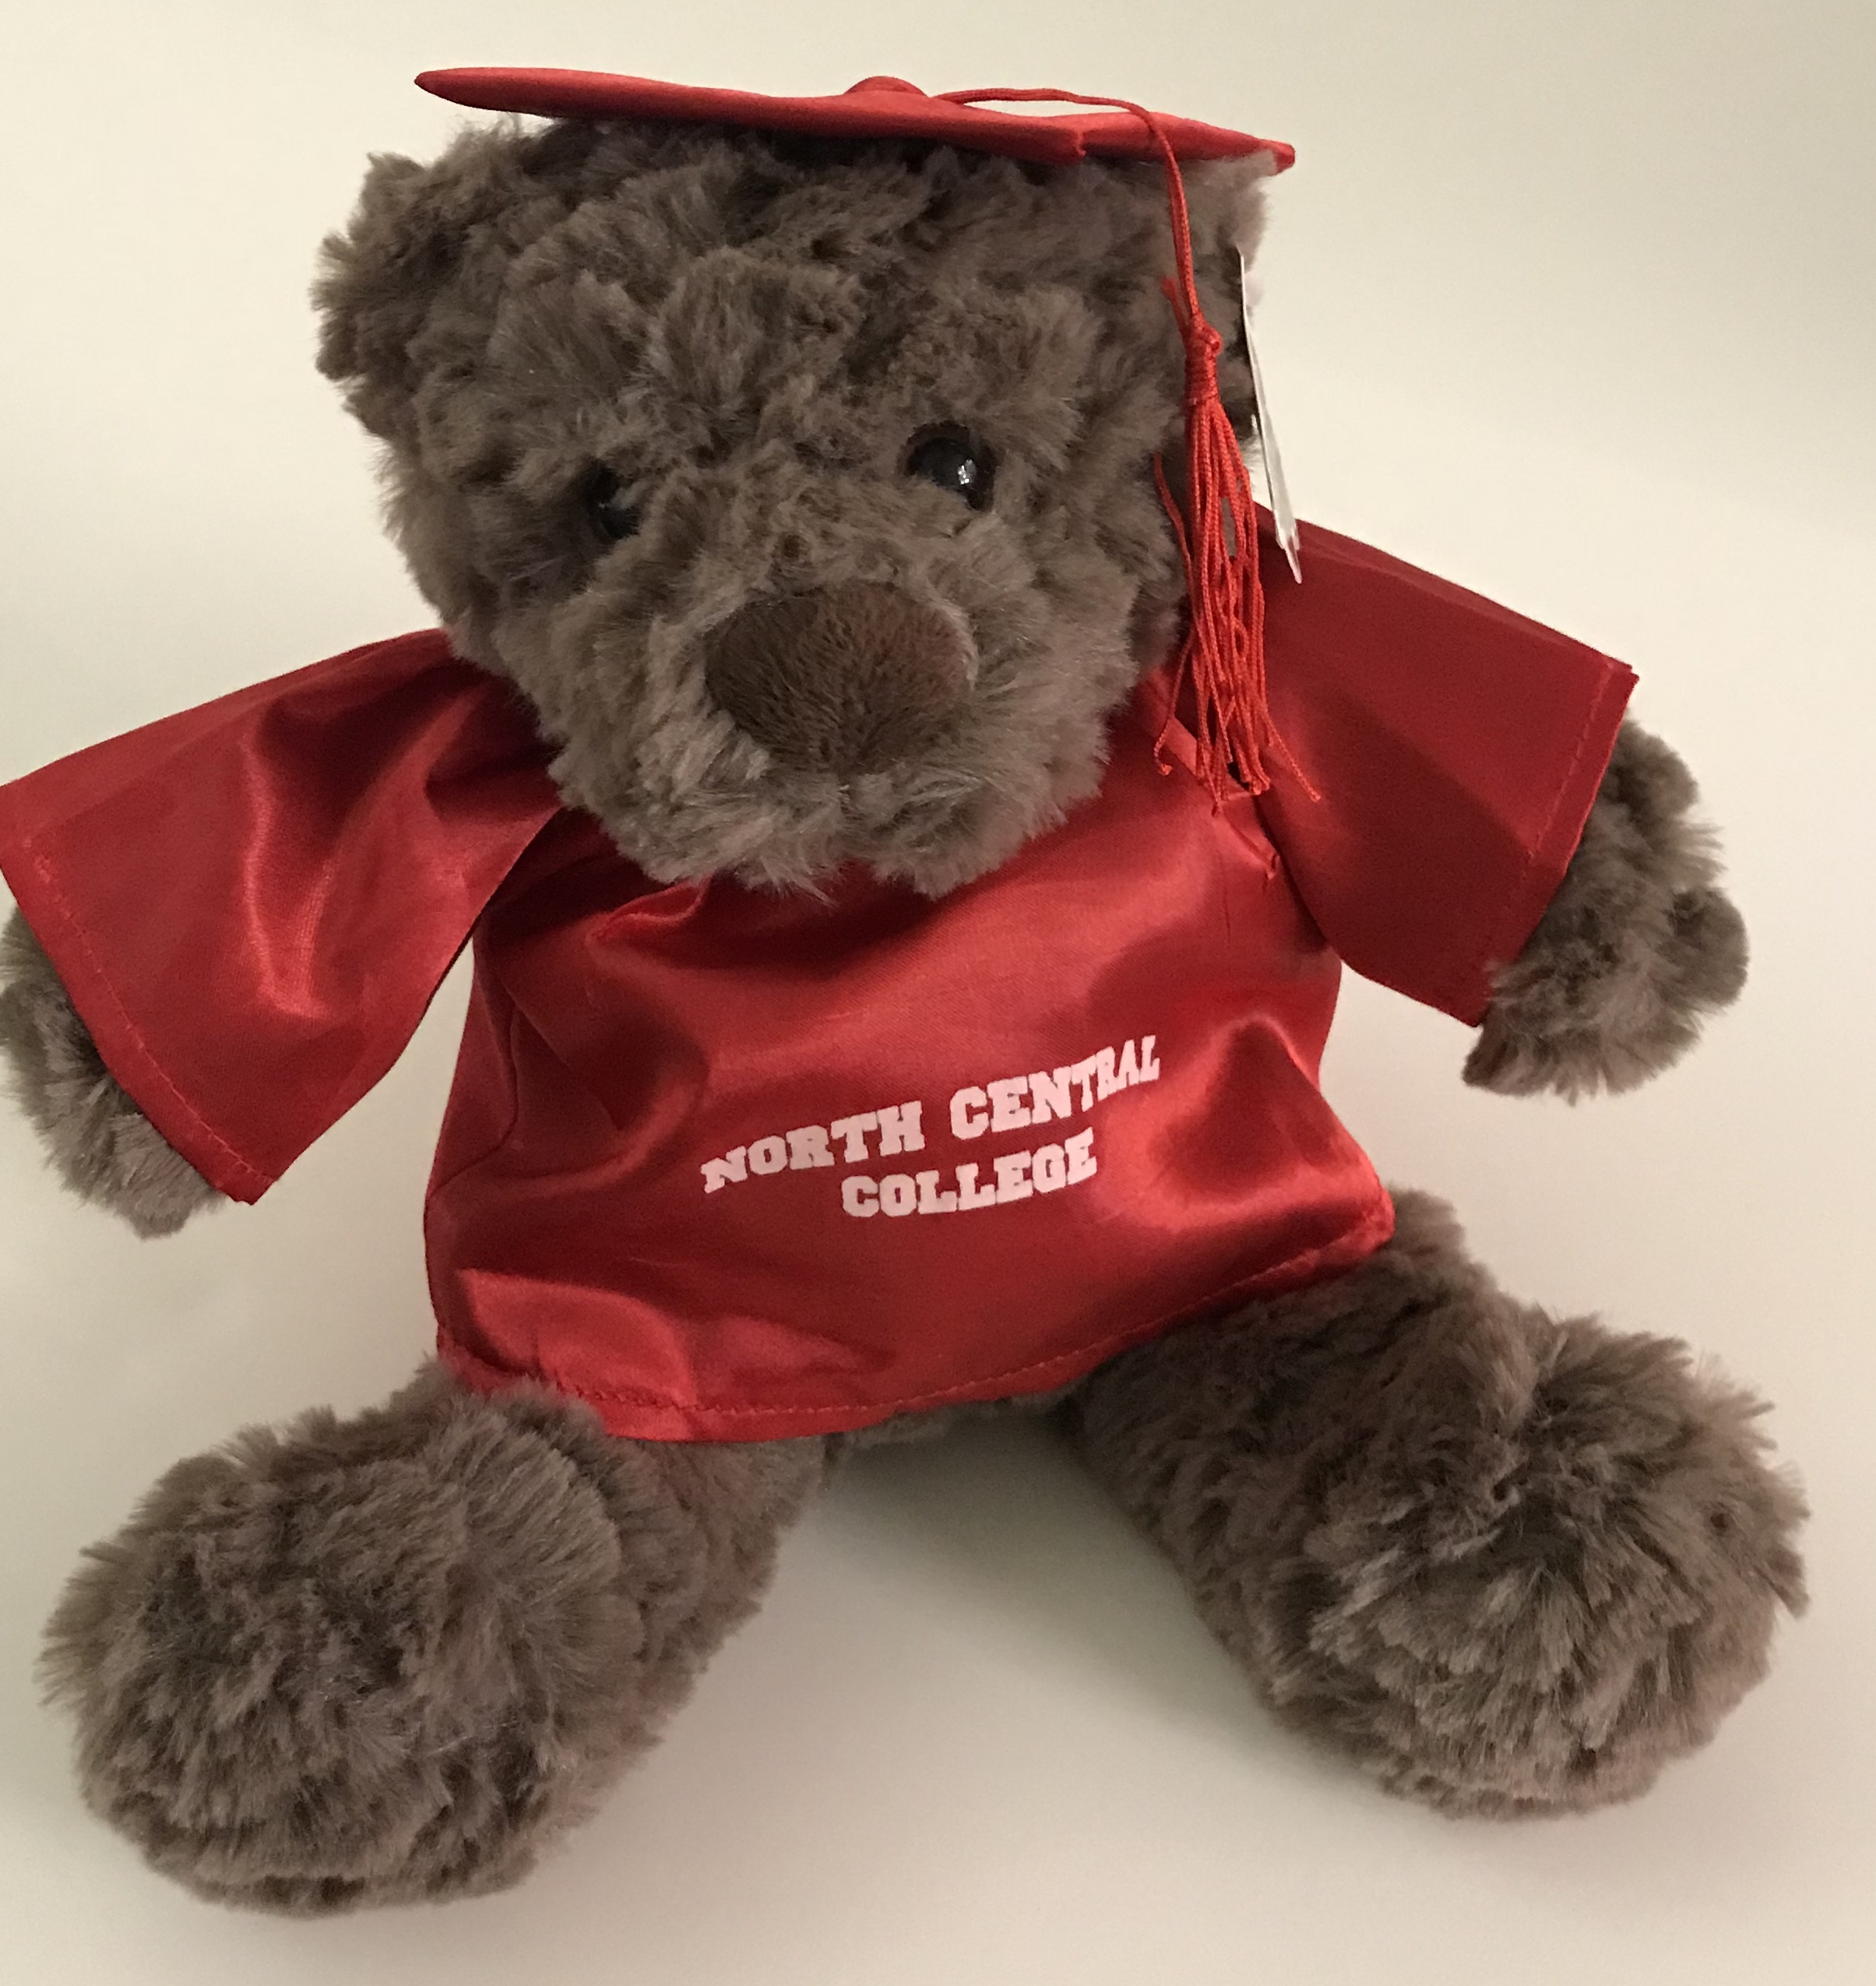 Image for the Plush Winston Graduation Bear w/Red Cap & Gown product